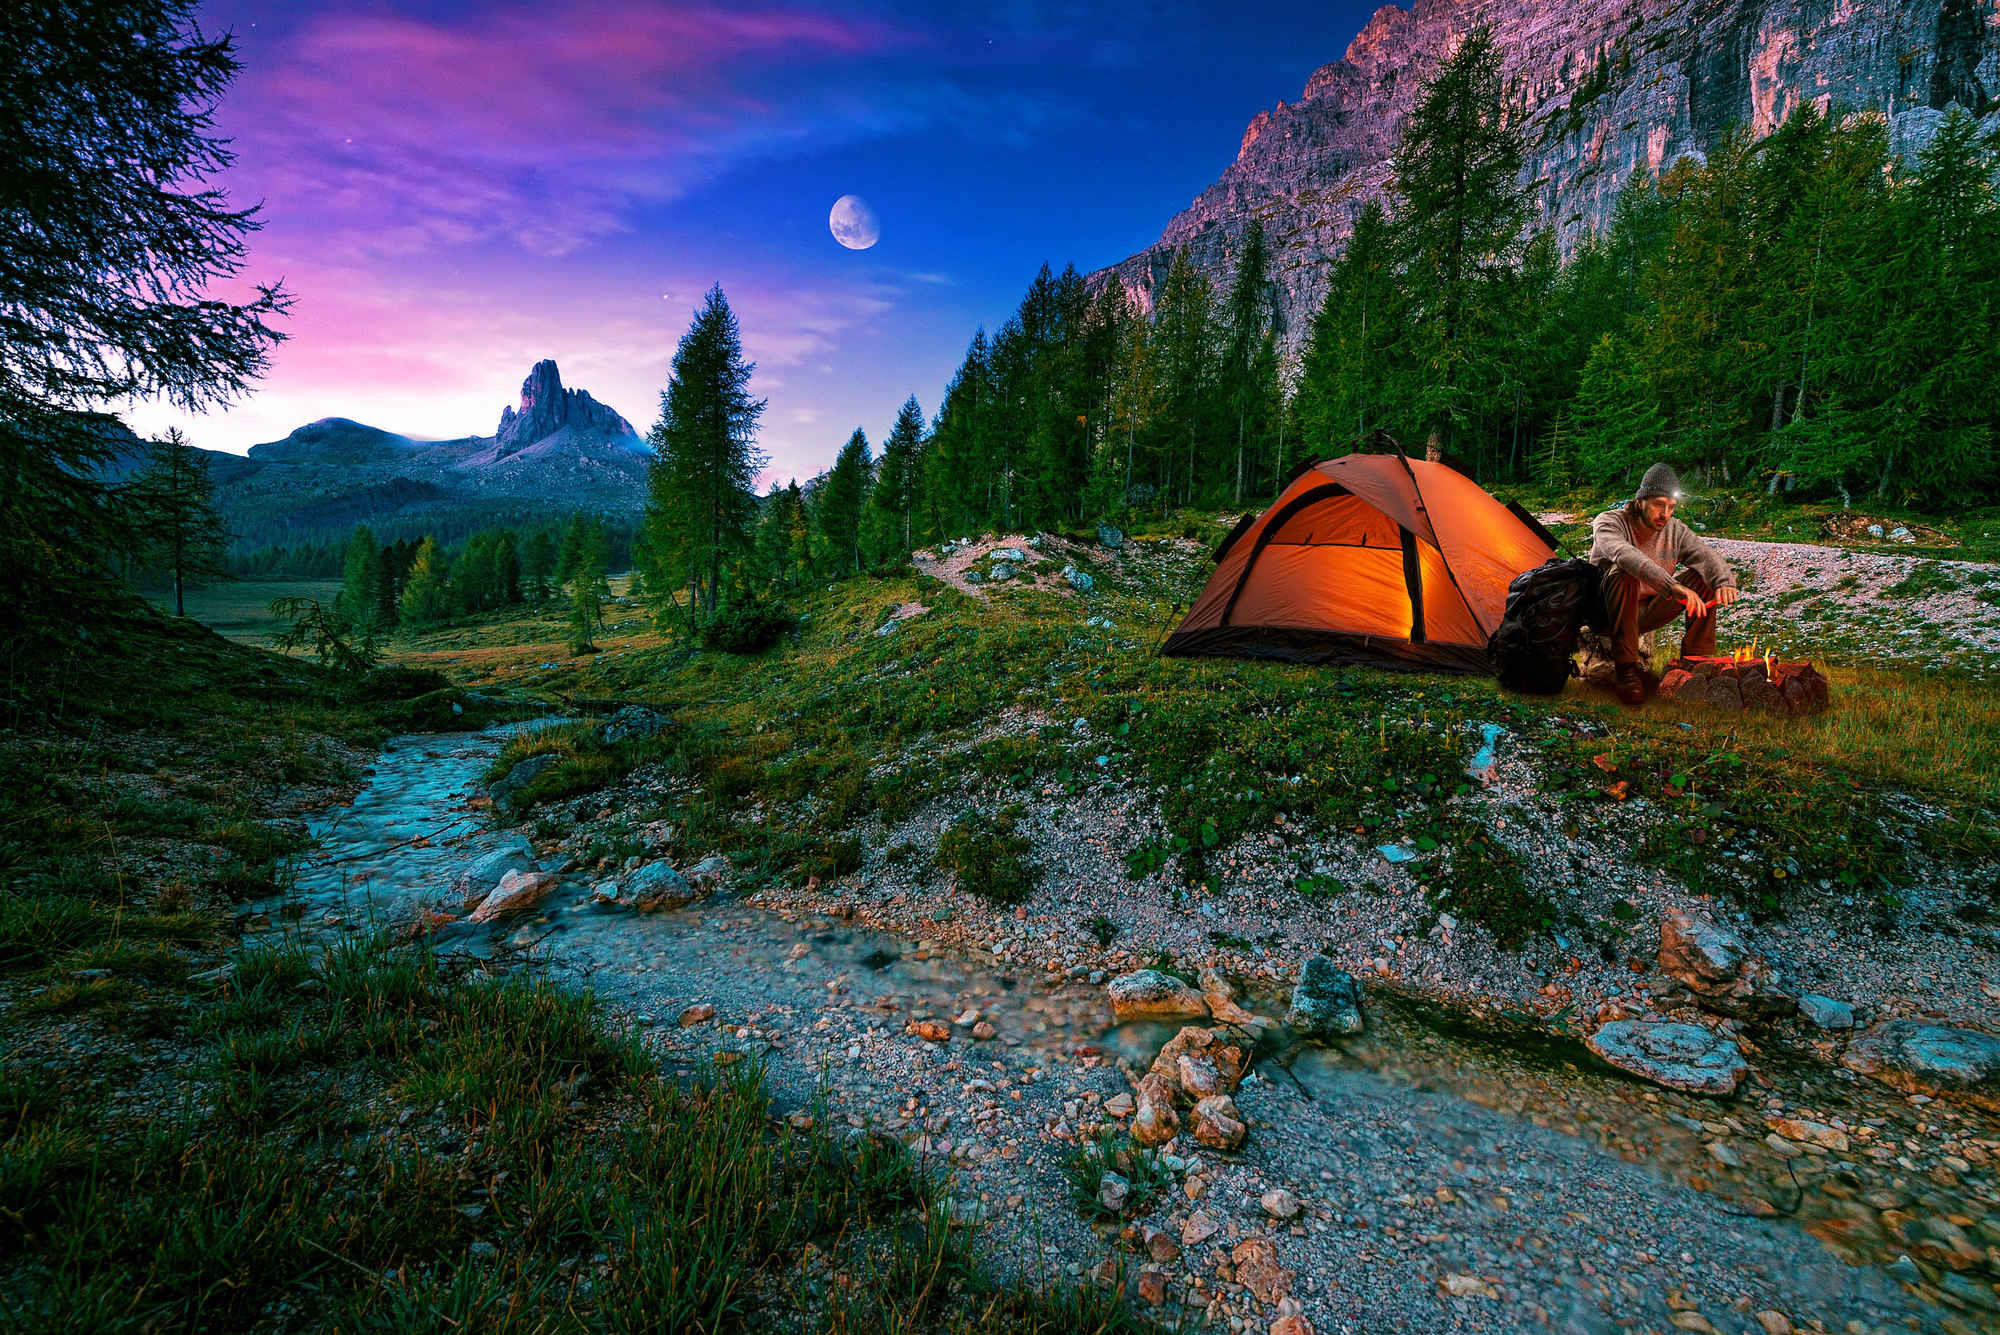 18 Camping Tips And Tricks For Survival (And Fun) | HuffPost